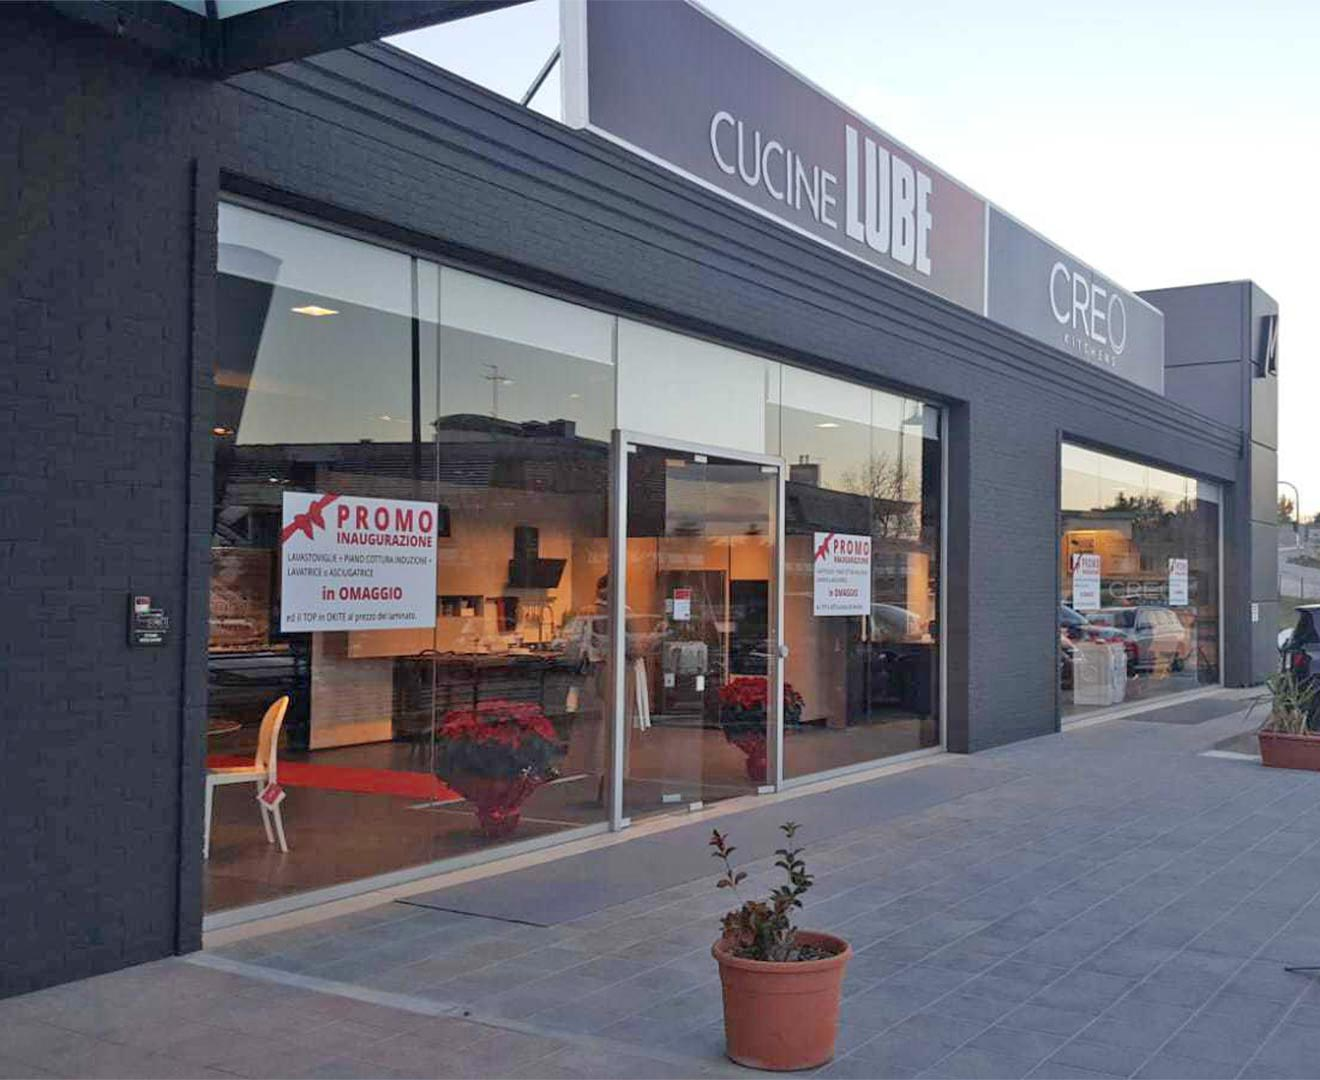 Cucine Mosciano Sant Angelo gruppo lube presents the renewed lube and creo store in